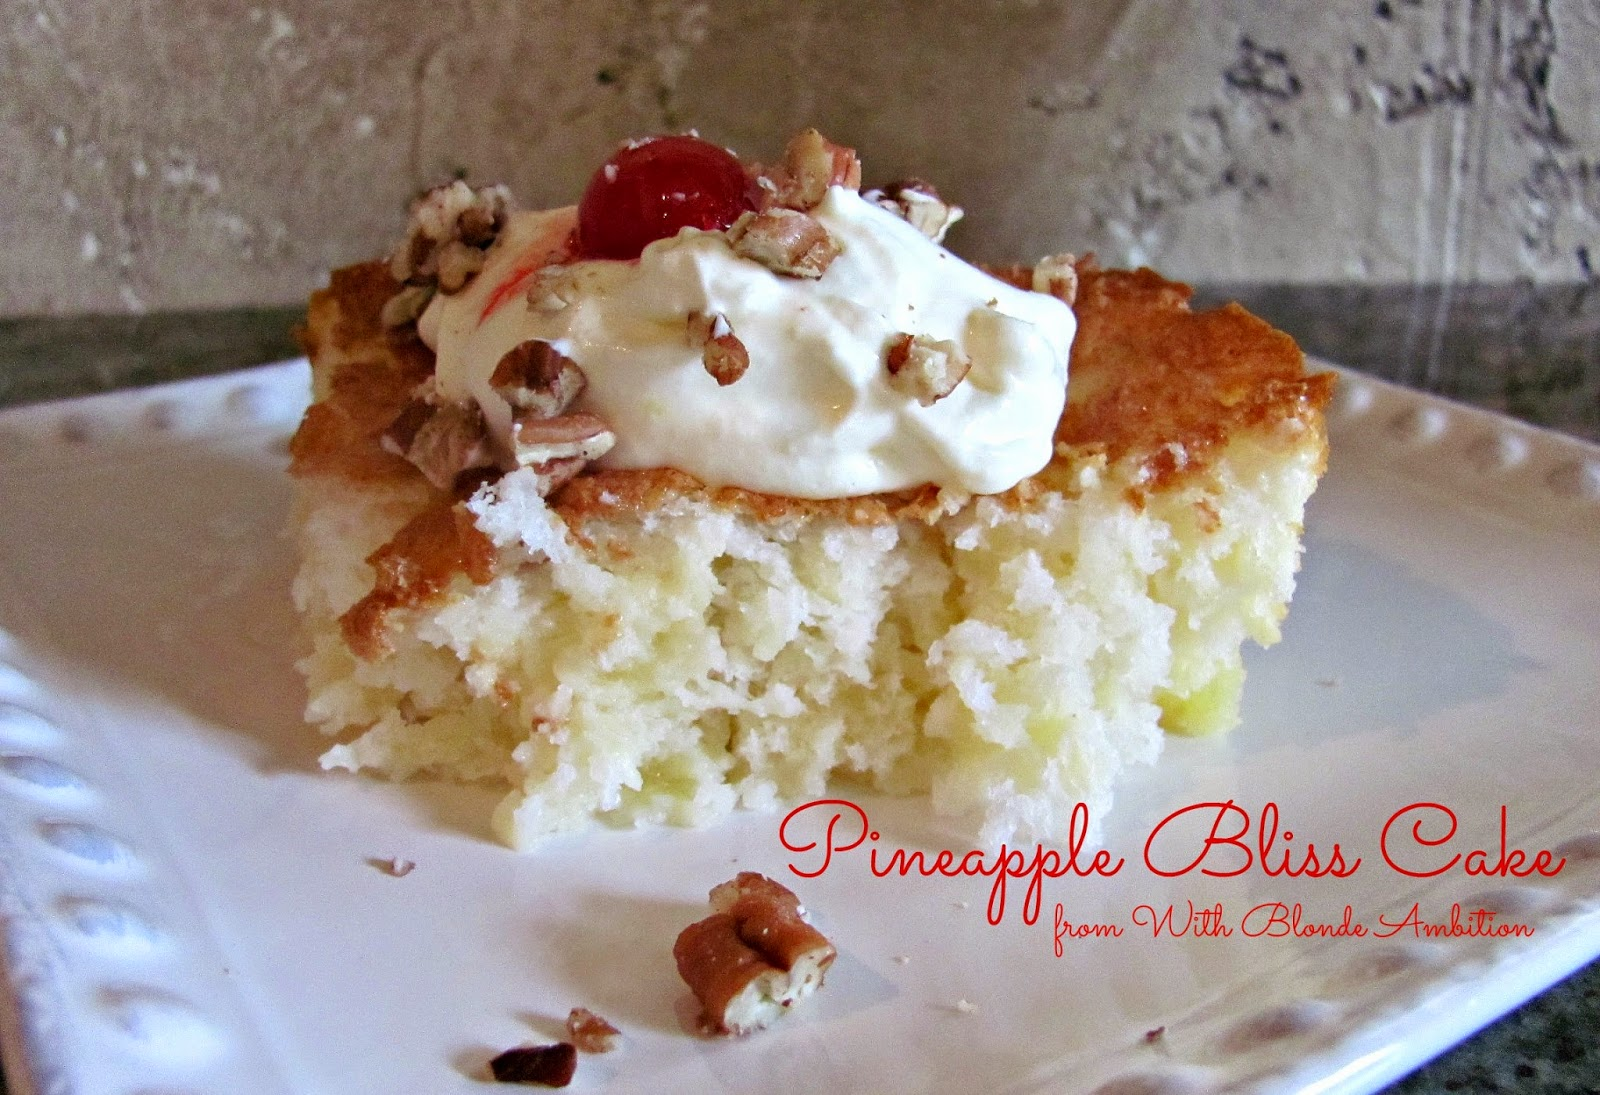 With Blonde Ambition 2 Ingredient Pineapple Bliss Cake